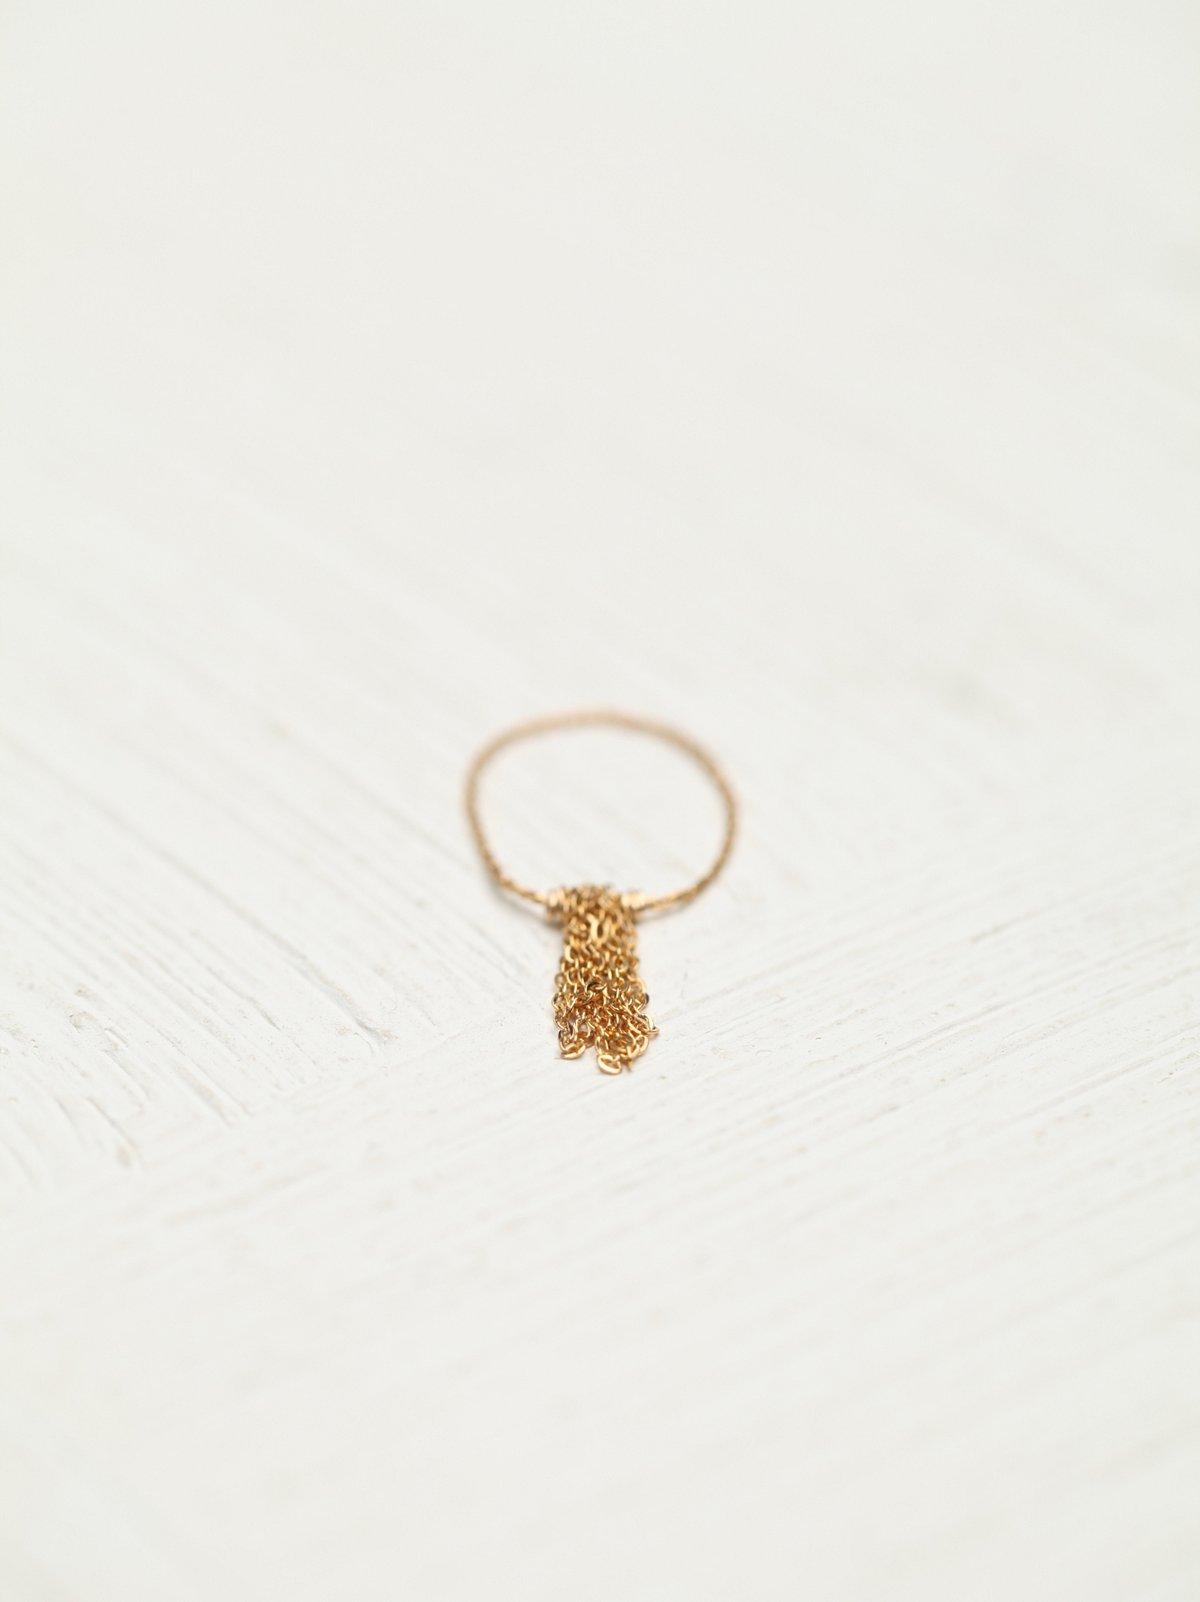 Itty Bitty Fringe Ring